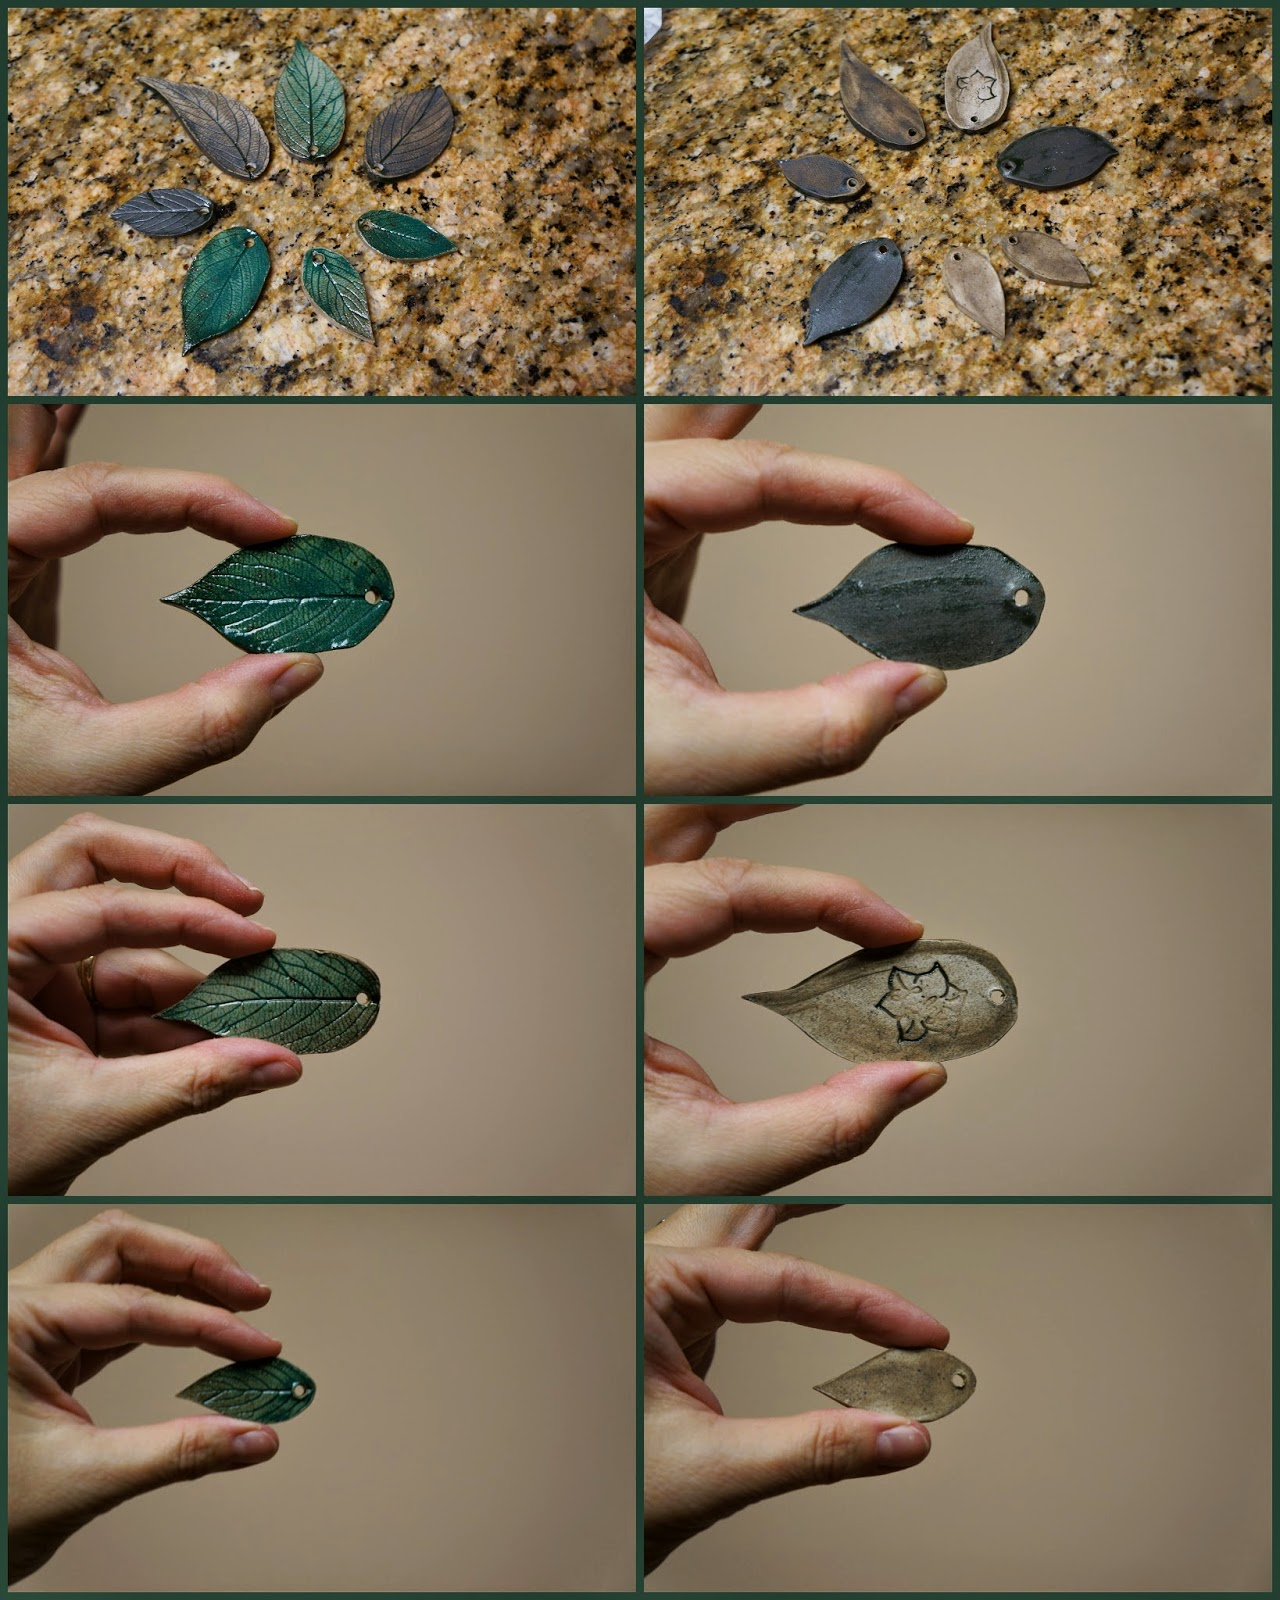 Unique handmade nature inspired ceramic stoneware leaves